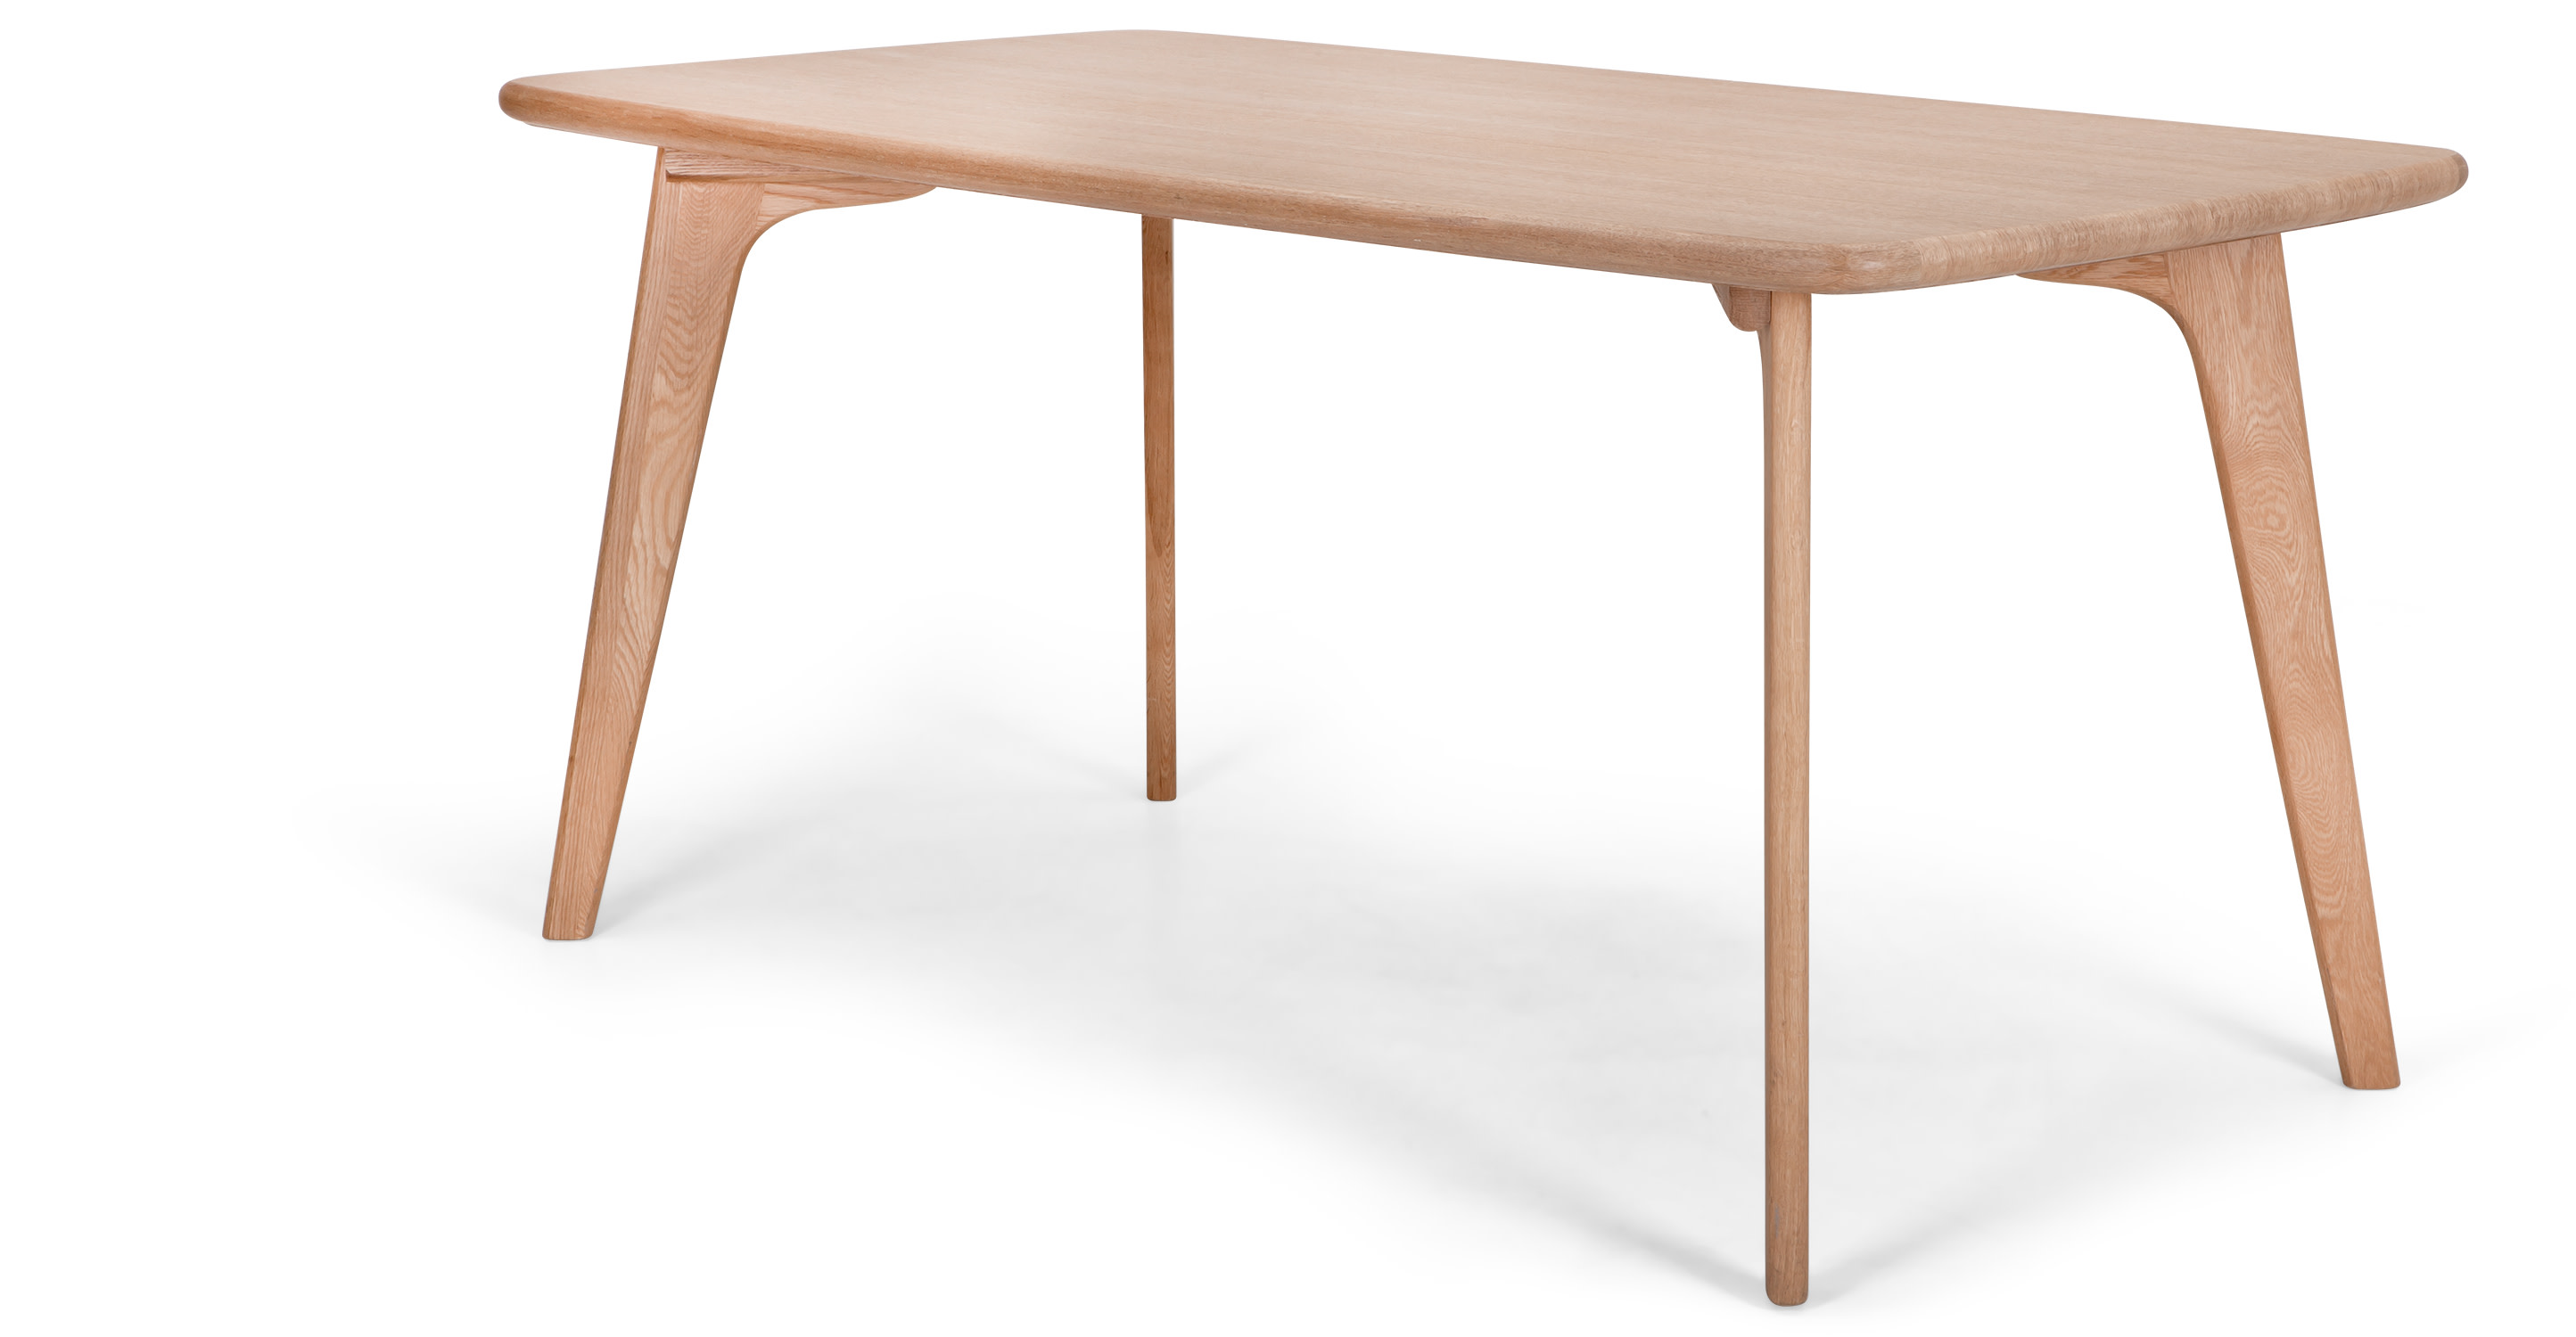 Fjord rectangle dining table oak madecom for Rectangle dining table